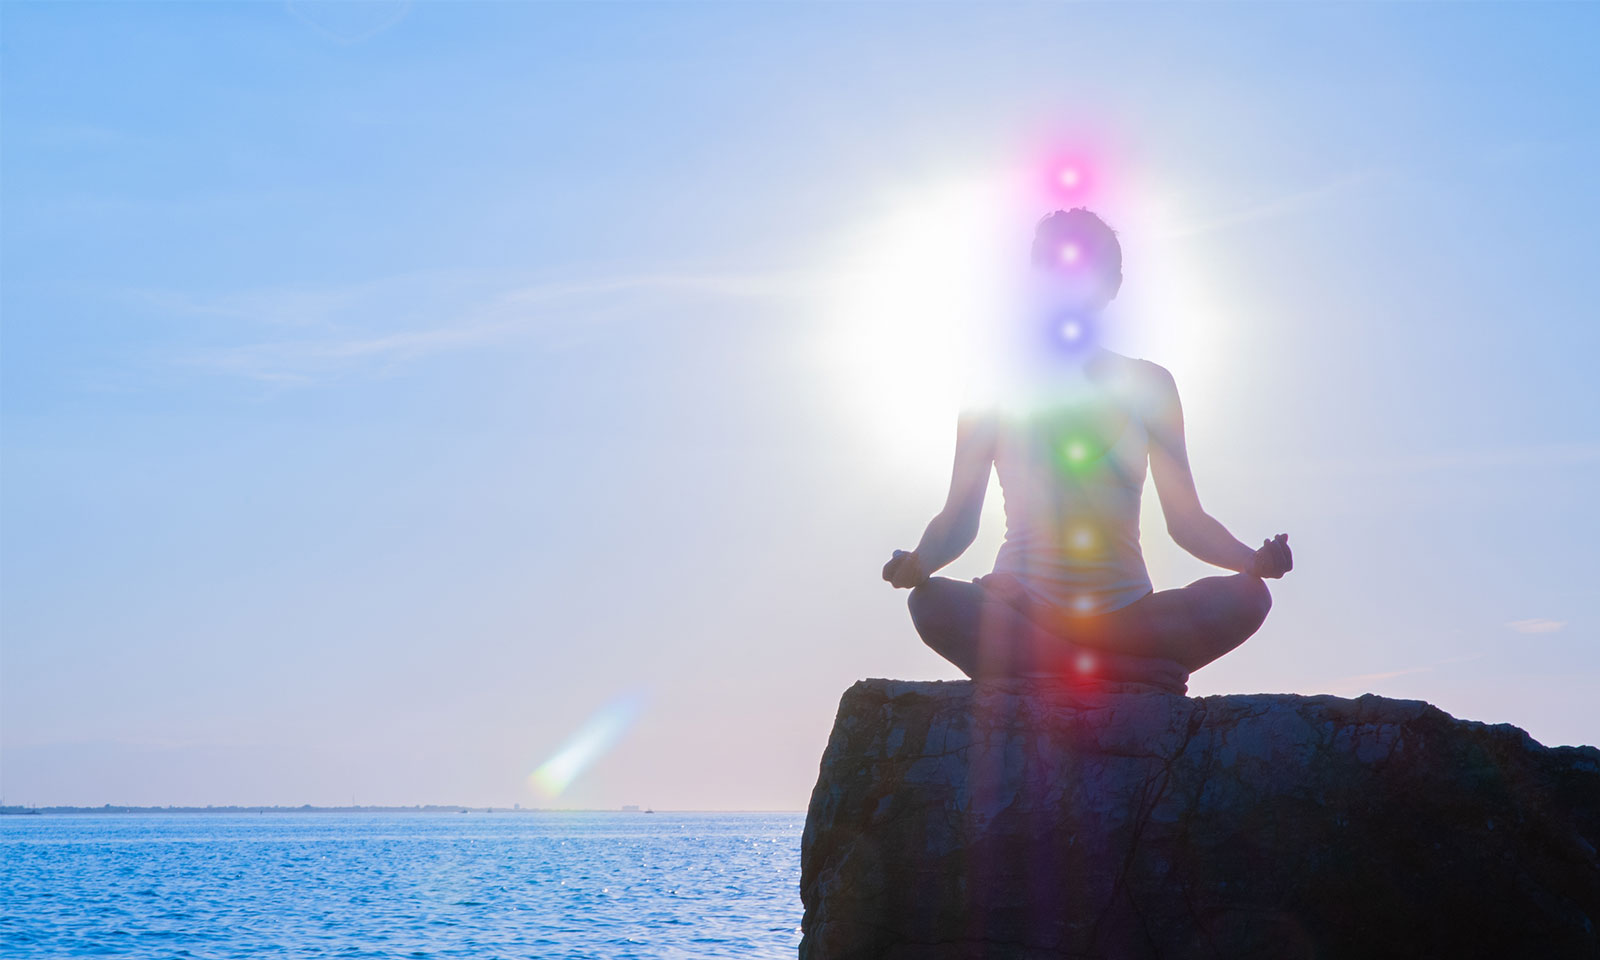 Woman sitting on a rock by the ocean in the daytime practicing kundalini yoga with her chakras glowing.